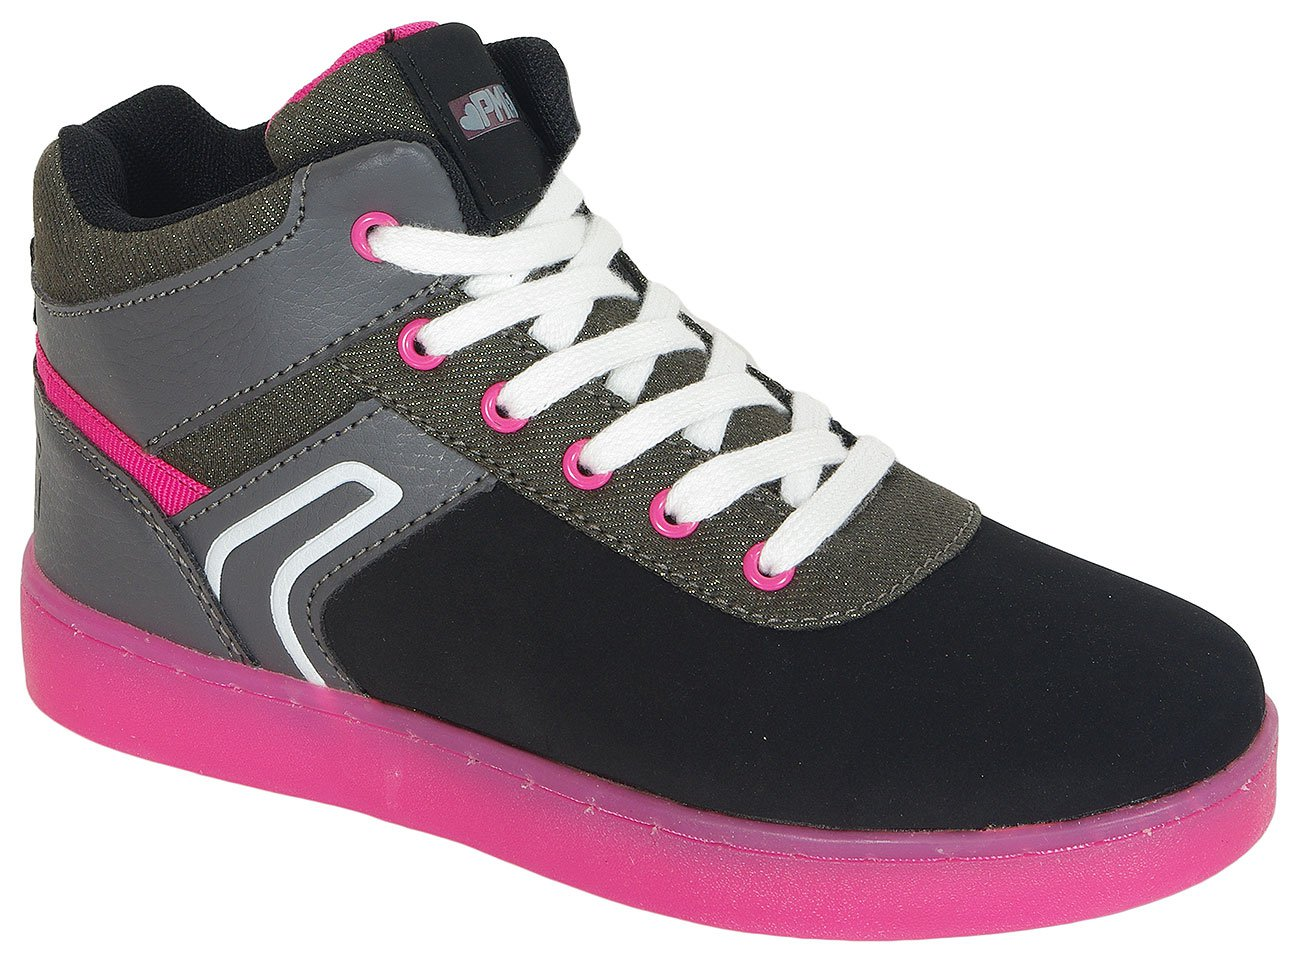 Primigi B&G Total Light Nabuk Pu/Nap. Nero sneakers